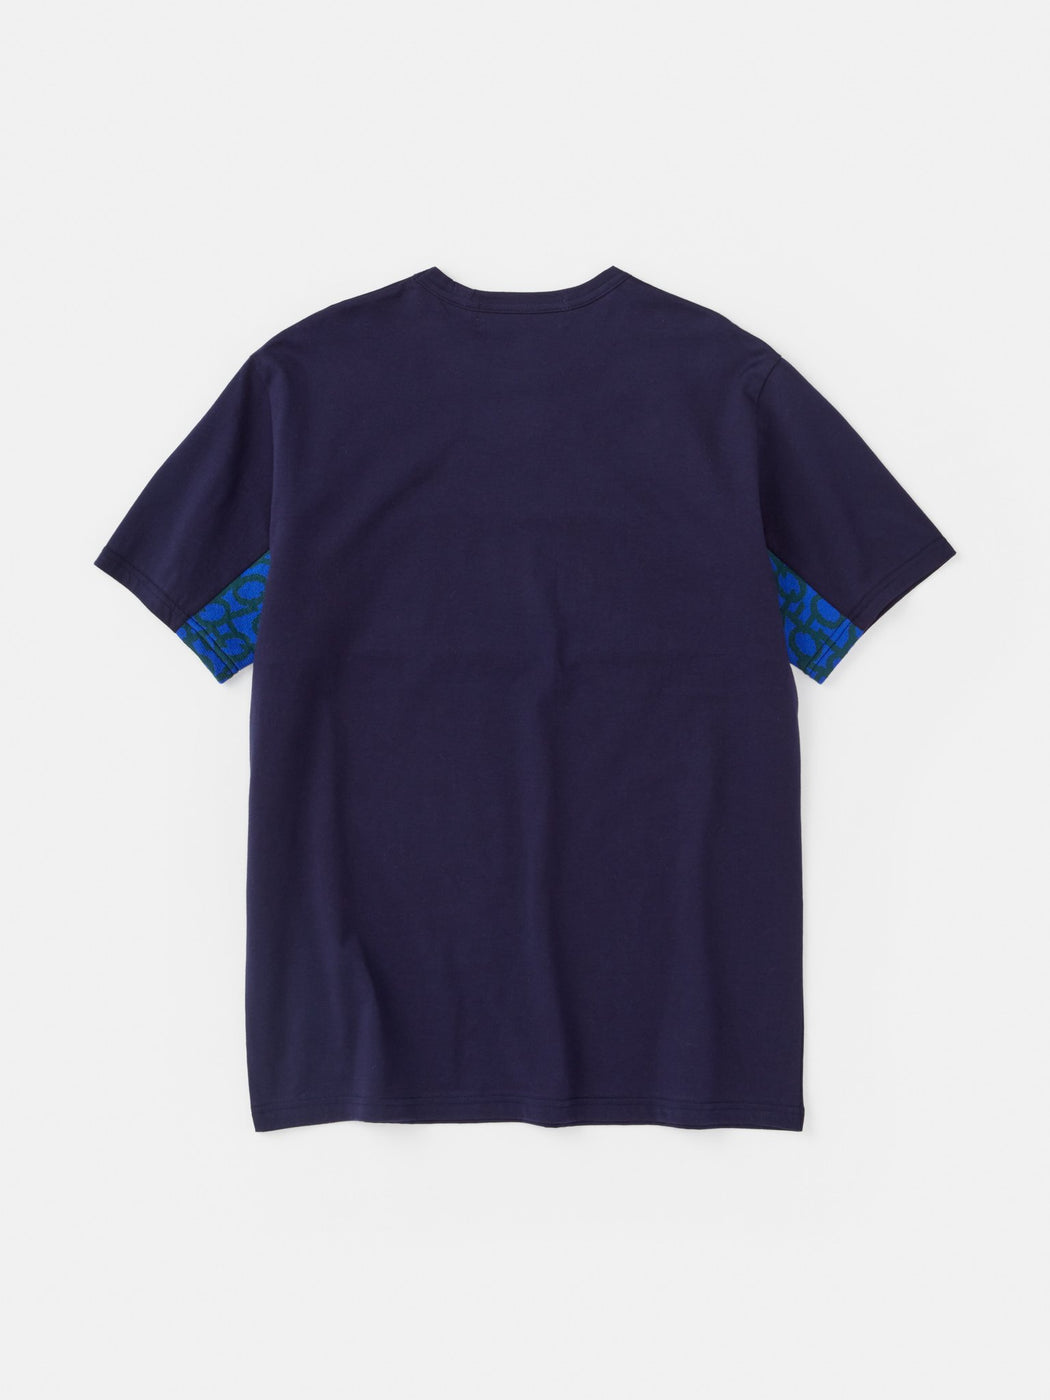 ALOYE Takahashi Knit Short Sleeve T-shirt Navy